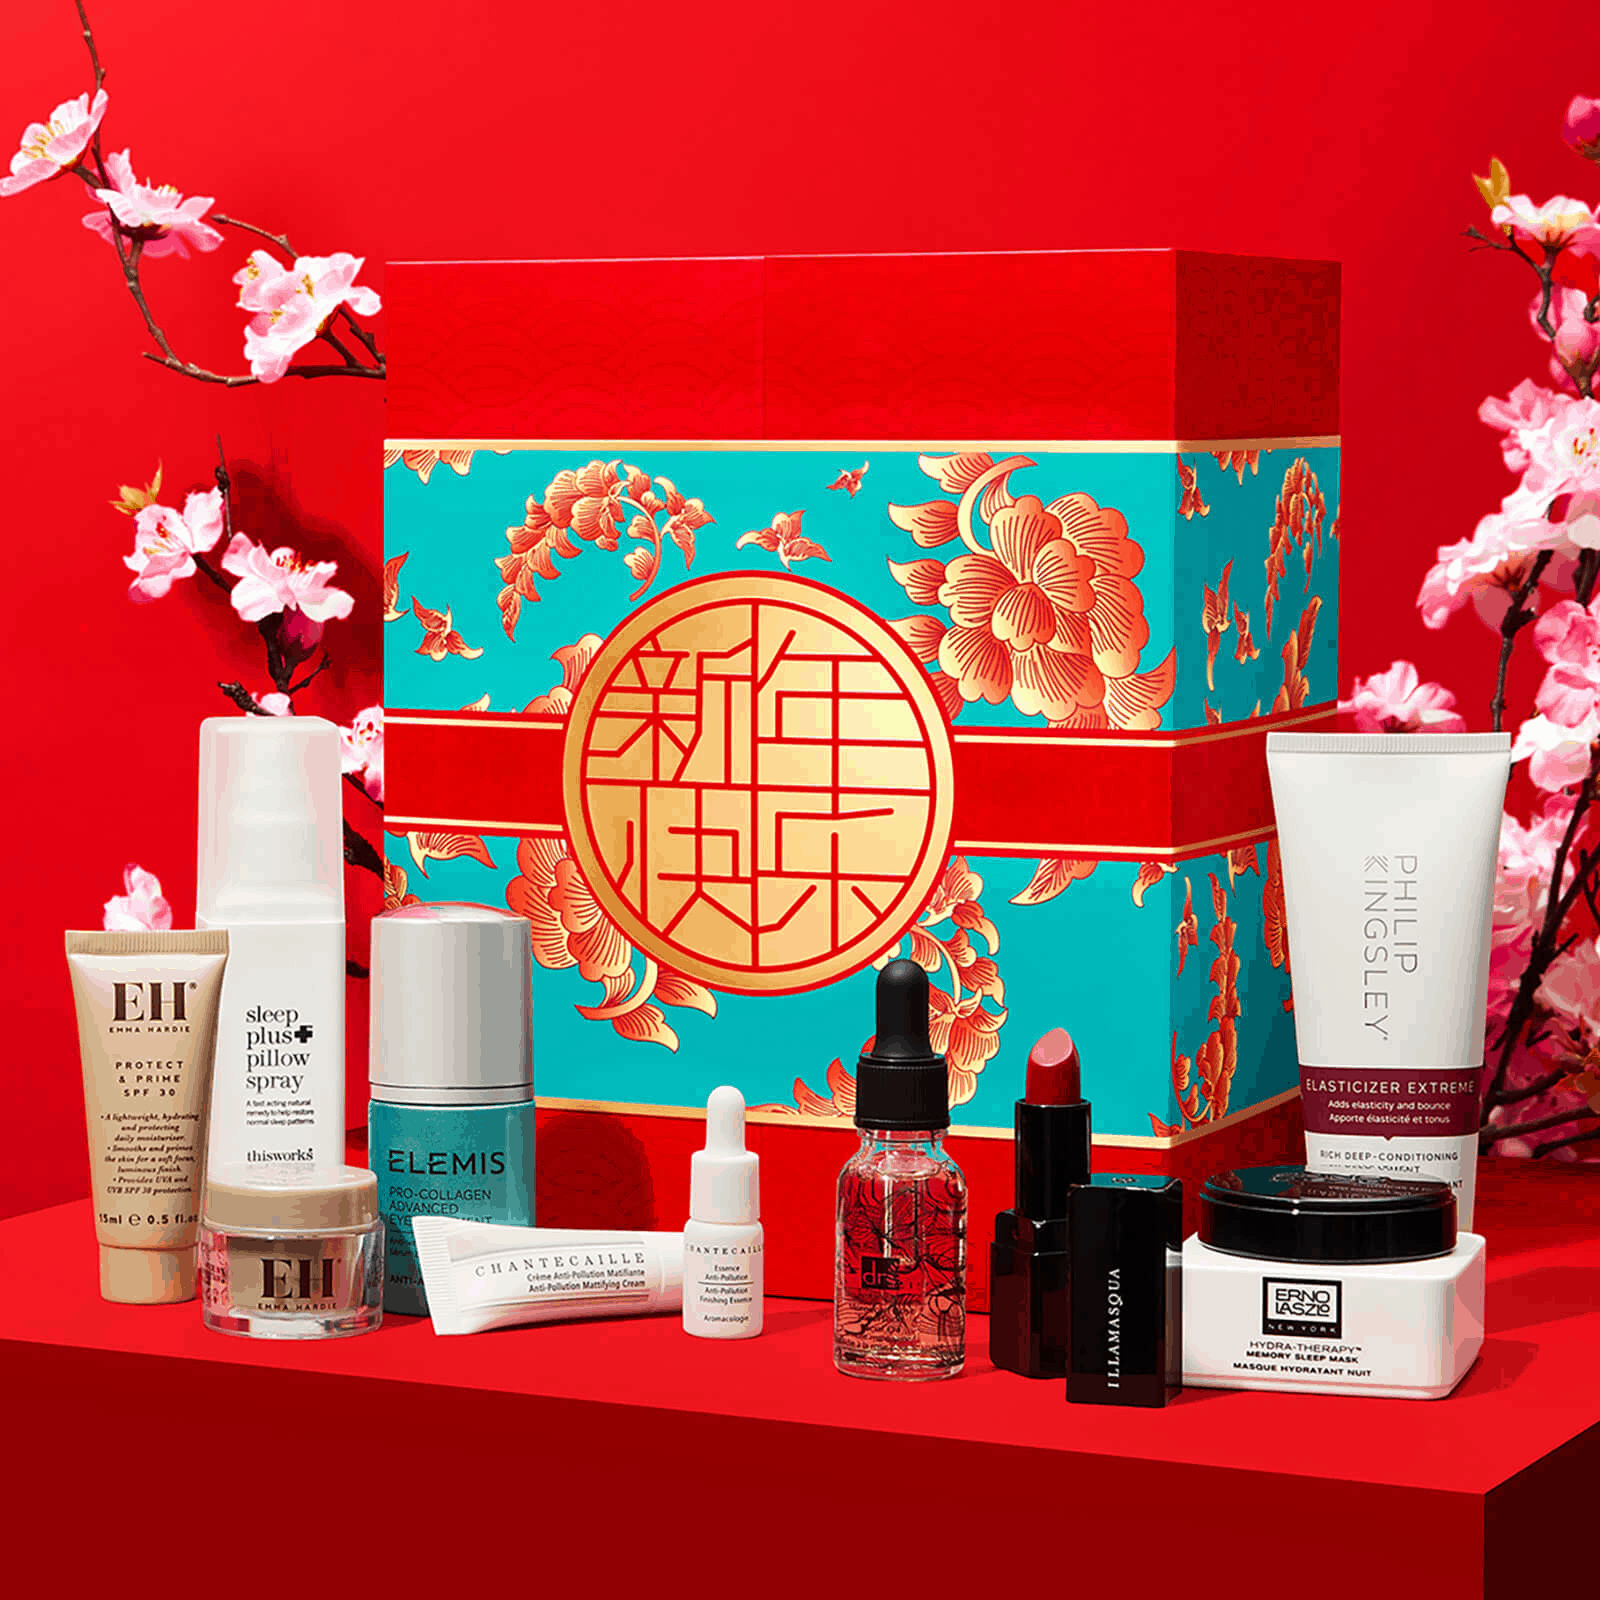 Look Fantastic Chinese New Year Limited Edition Beauty Box Available Now + Full Spoilers! - hello subscription -   beauty Box new year